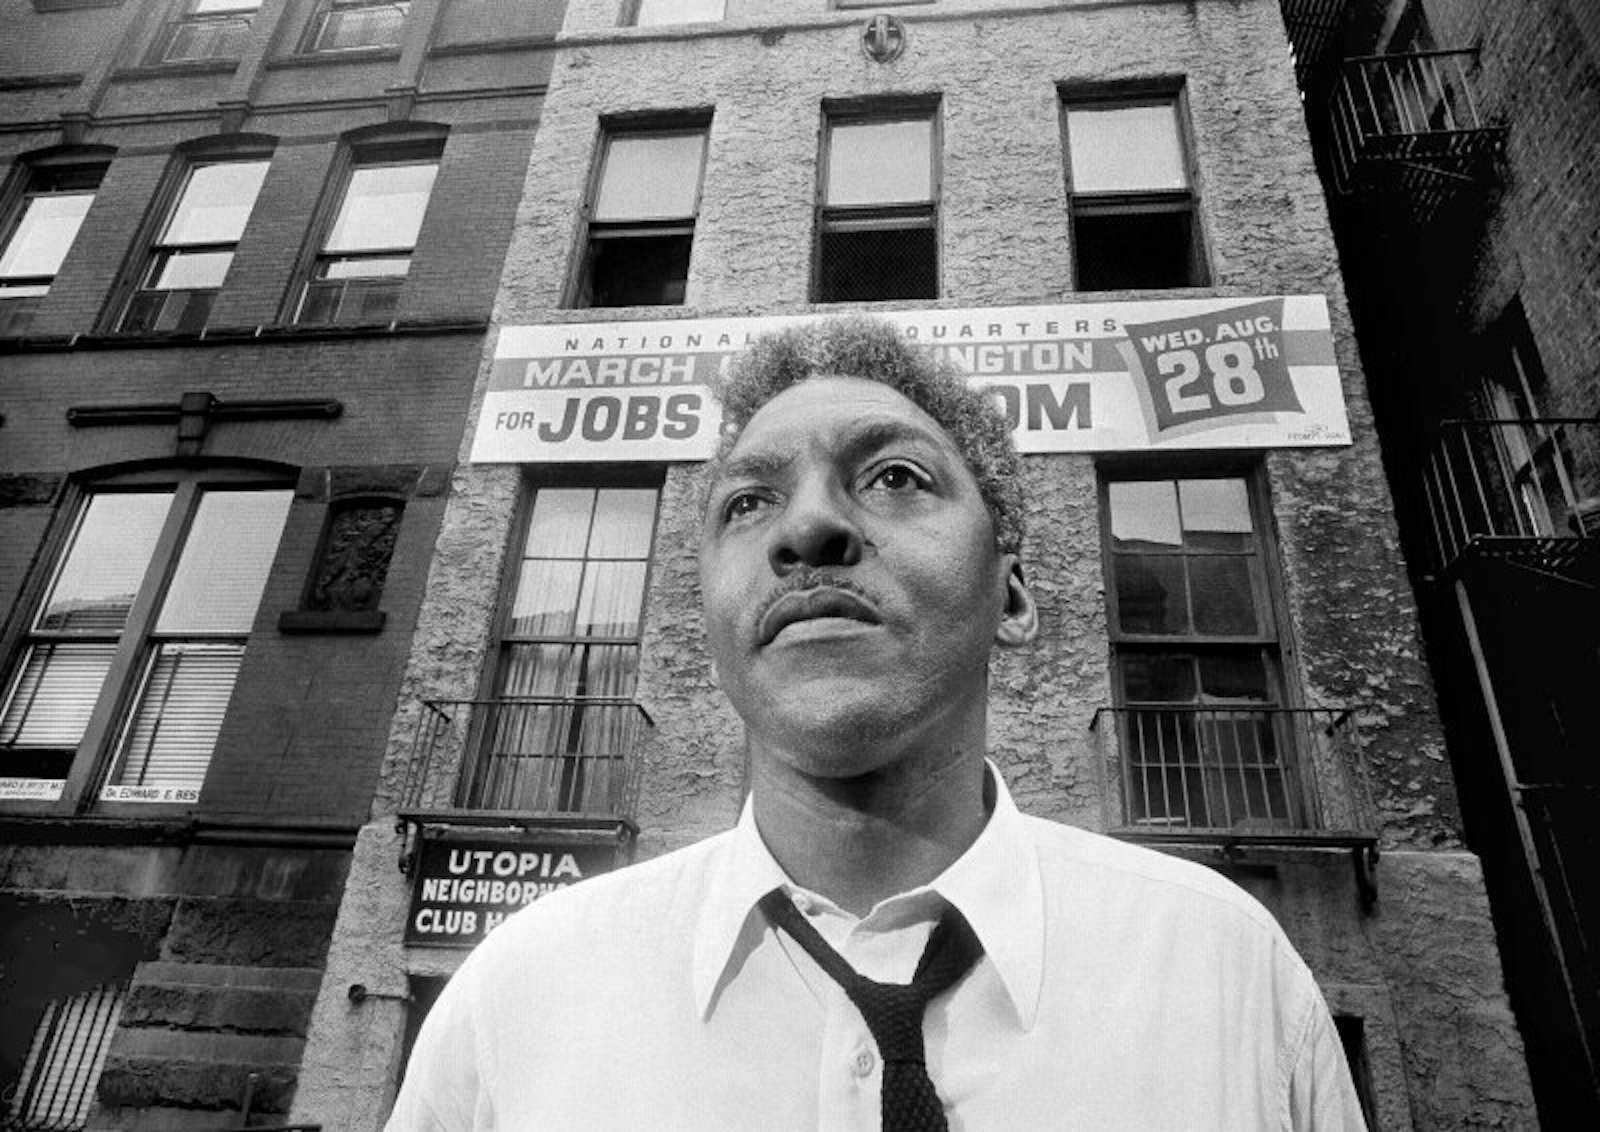 Bayard Rustin, African American History, Black History, LGBTQ, LGBTQ Rights, Civil Rights, KOLUMN Magazine, KOLUMN, KINDR'D Magazine, KINDR'D, Willoughby Avenue, Wriit,